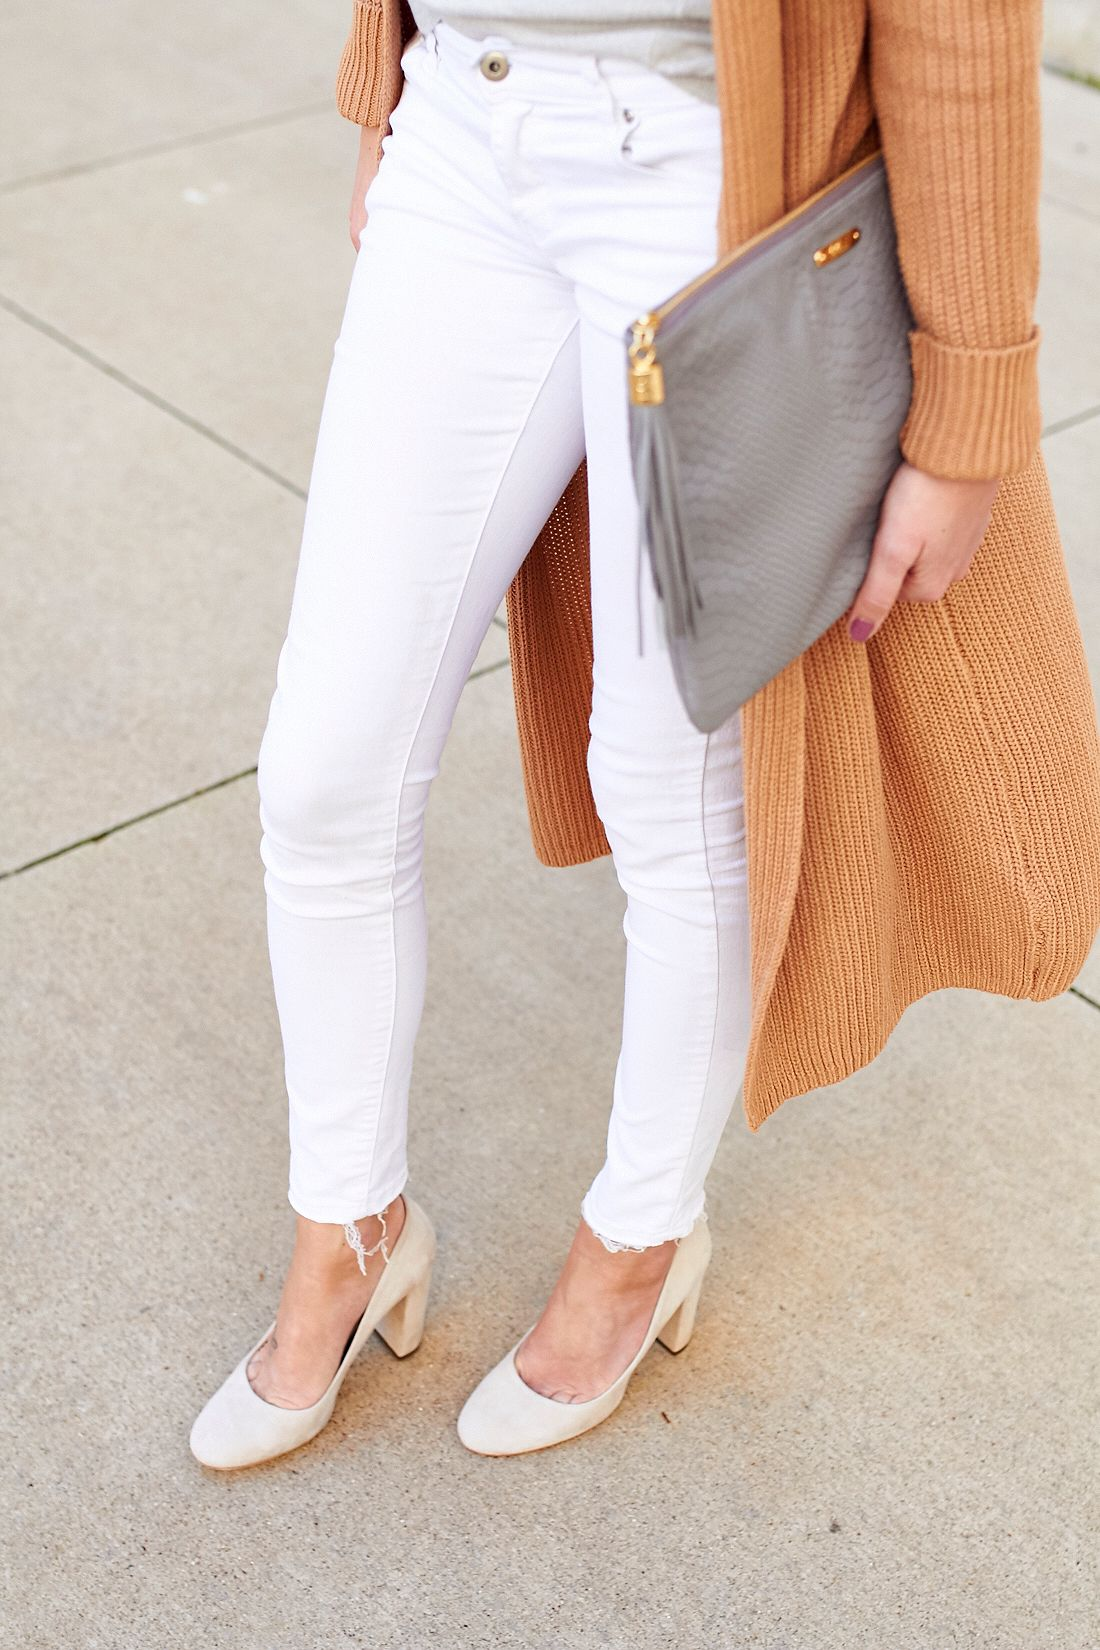 fashion-jackson-white-skinny-jeans-mgemi-torre-pumps